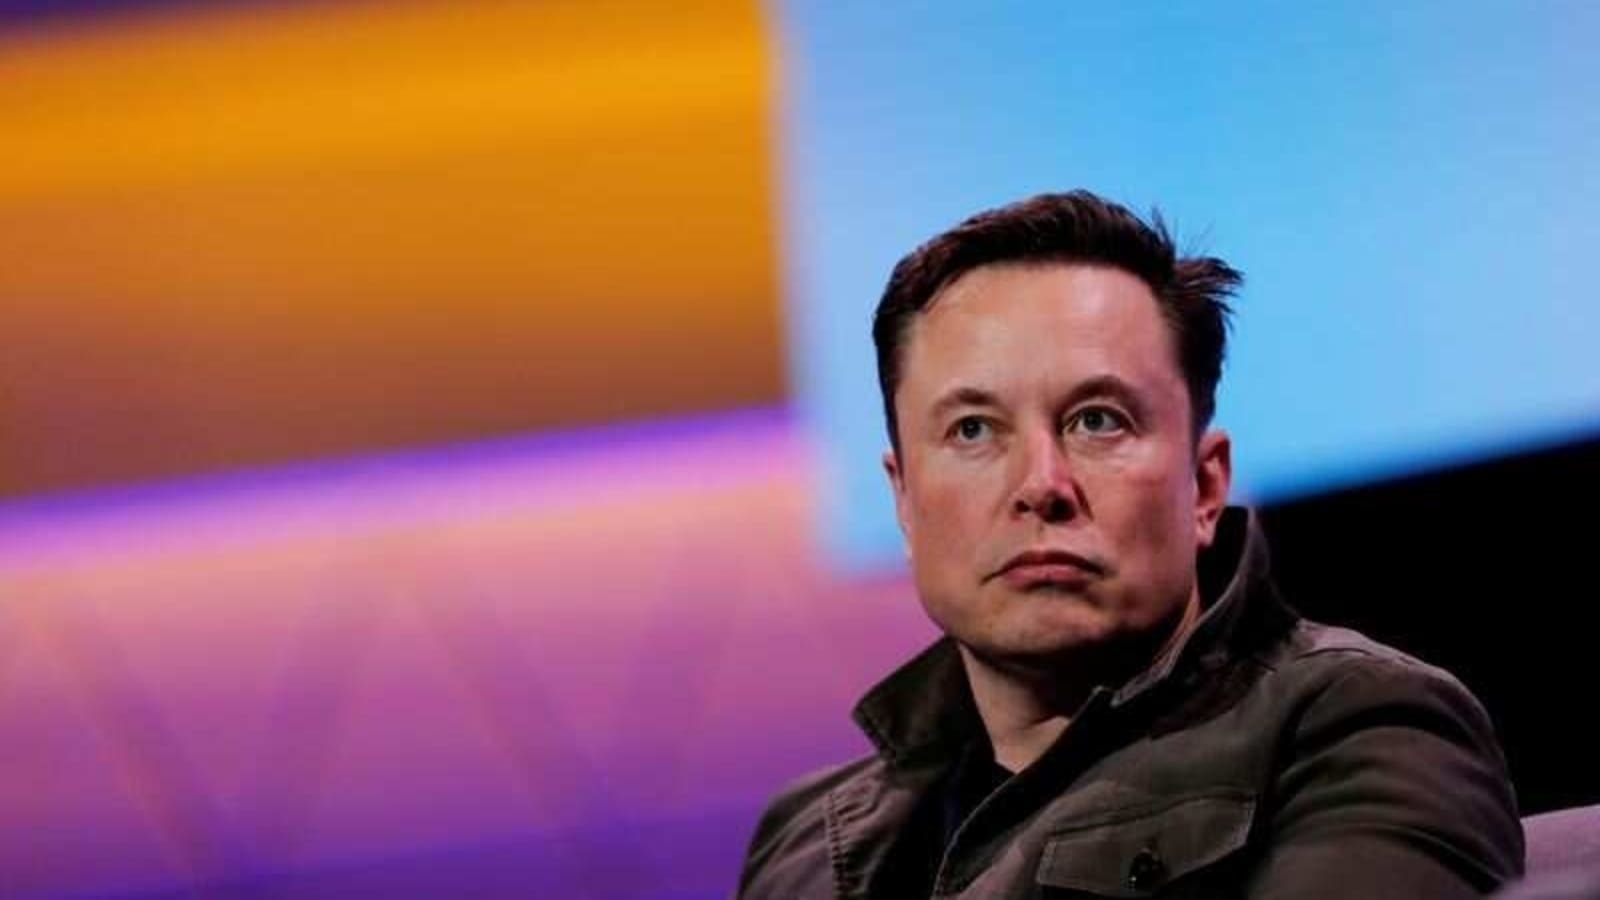 'Are you an alien': Elon Musk's reply to <b>Twitter</b> user's question sparks laughter thumbnail